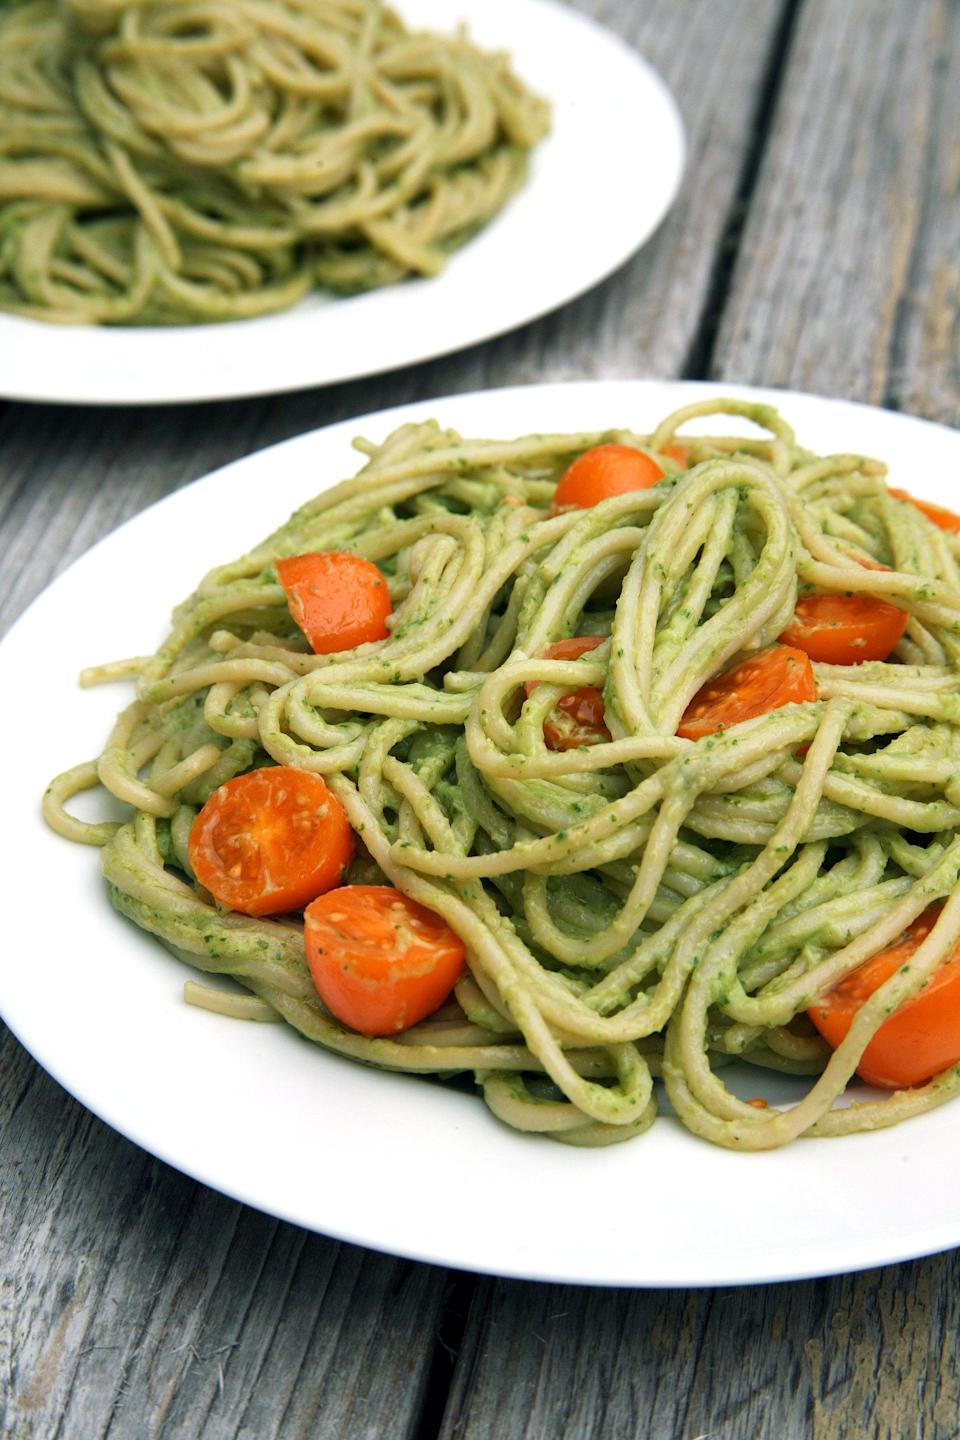 """<p>This oh-so-creamy delicious homemade dish is like a combination of mac and cheese and pesto pasta. Use fresh basil and tomatoes from your garden, and up the protein by adding <a href=""""https://www.popsugar.com/fitness/photo-gallery/34429412/image/34437125/How-Sauté"""" class=""""link rapid-noclick-resp"""" rel=""""nofollow noopener"""" target=""""_blank"""" data-ylk=""""slk:sautéed tofu"""">sautéed tofu</a>, beans, or <a href=""""https://www.popsugar.com/fitness/Beyond-Sausage-Review-44883119"""" class=""""link rapid-noclick-resp"""" rel=""""nofollow noopener"""" target=""""_blank"""" data-ylk=""""slk:Beyond Meat sausage"""">Beyond Meat sausage</a>.</p> <p><strong>Get the recipe:</strong> <a href=""""https://www.popsugar.com/fitness/Avocado-Pasta-40509917"""" class=""""link rapid-noclick-resp"""" rel=""""nofollow noopener"""" target=""""_blank"""" data-ylk=""""slk:avocado pesto pasta"""">avocado pesto pasta</a></p>"""